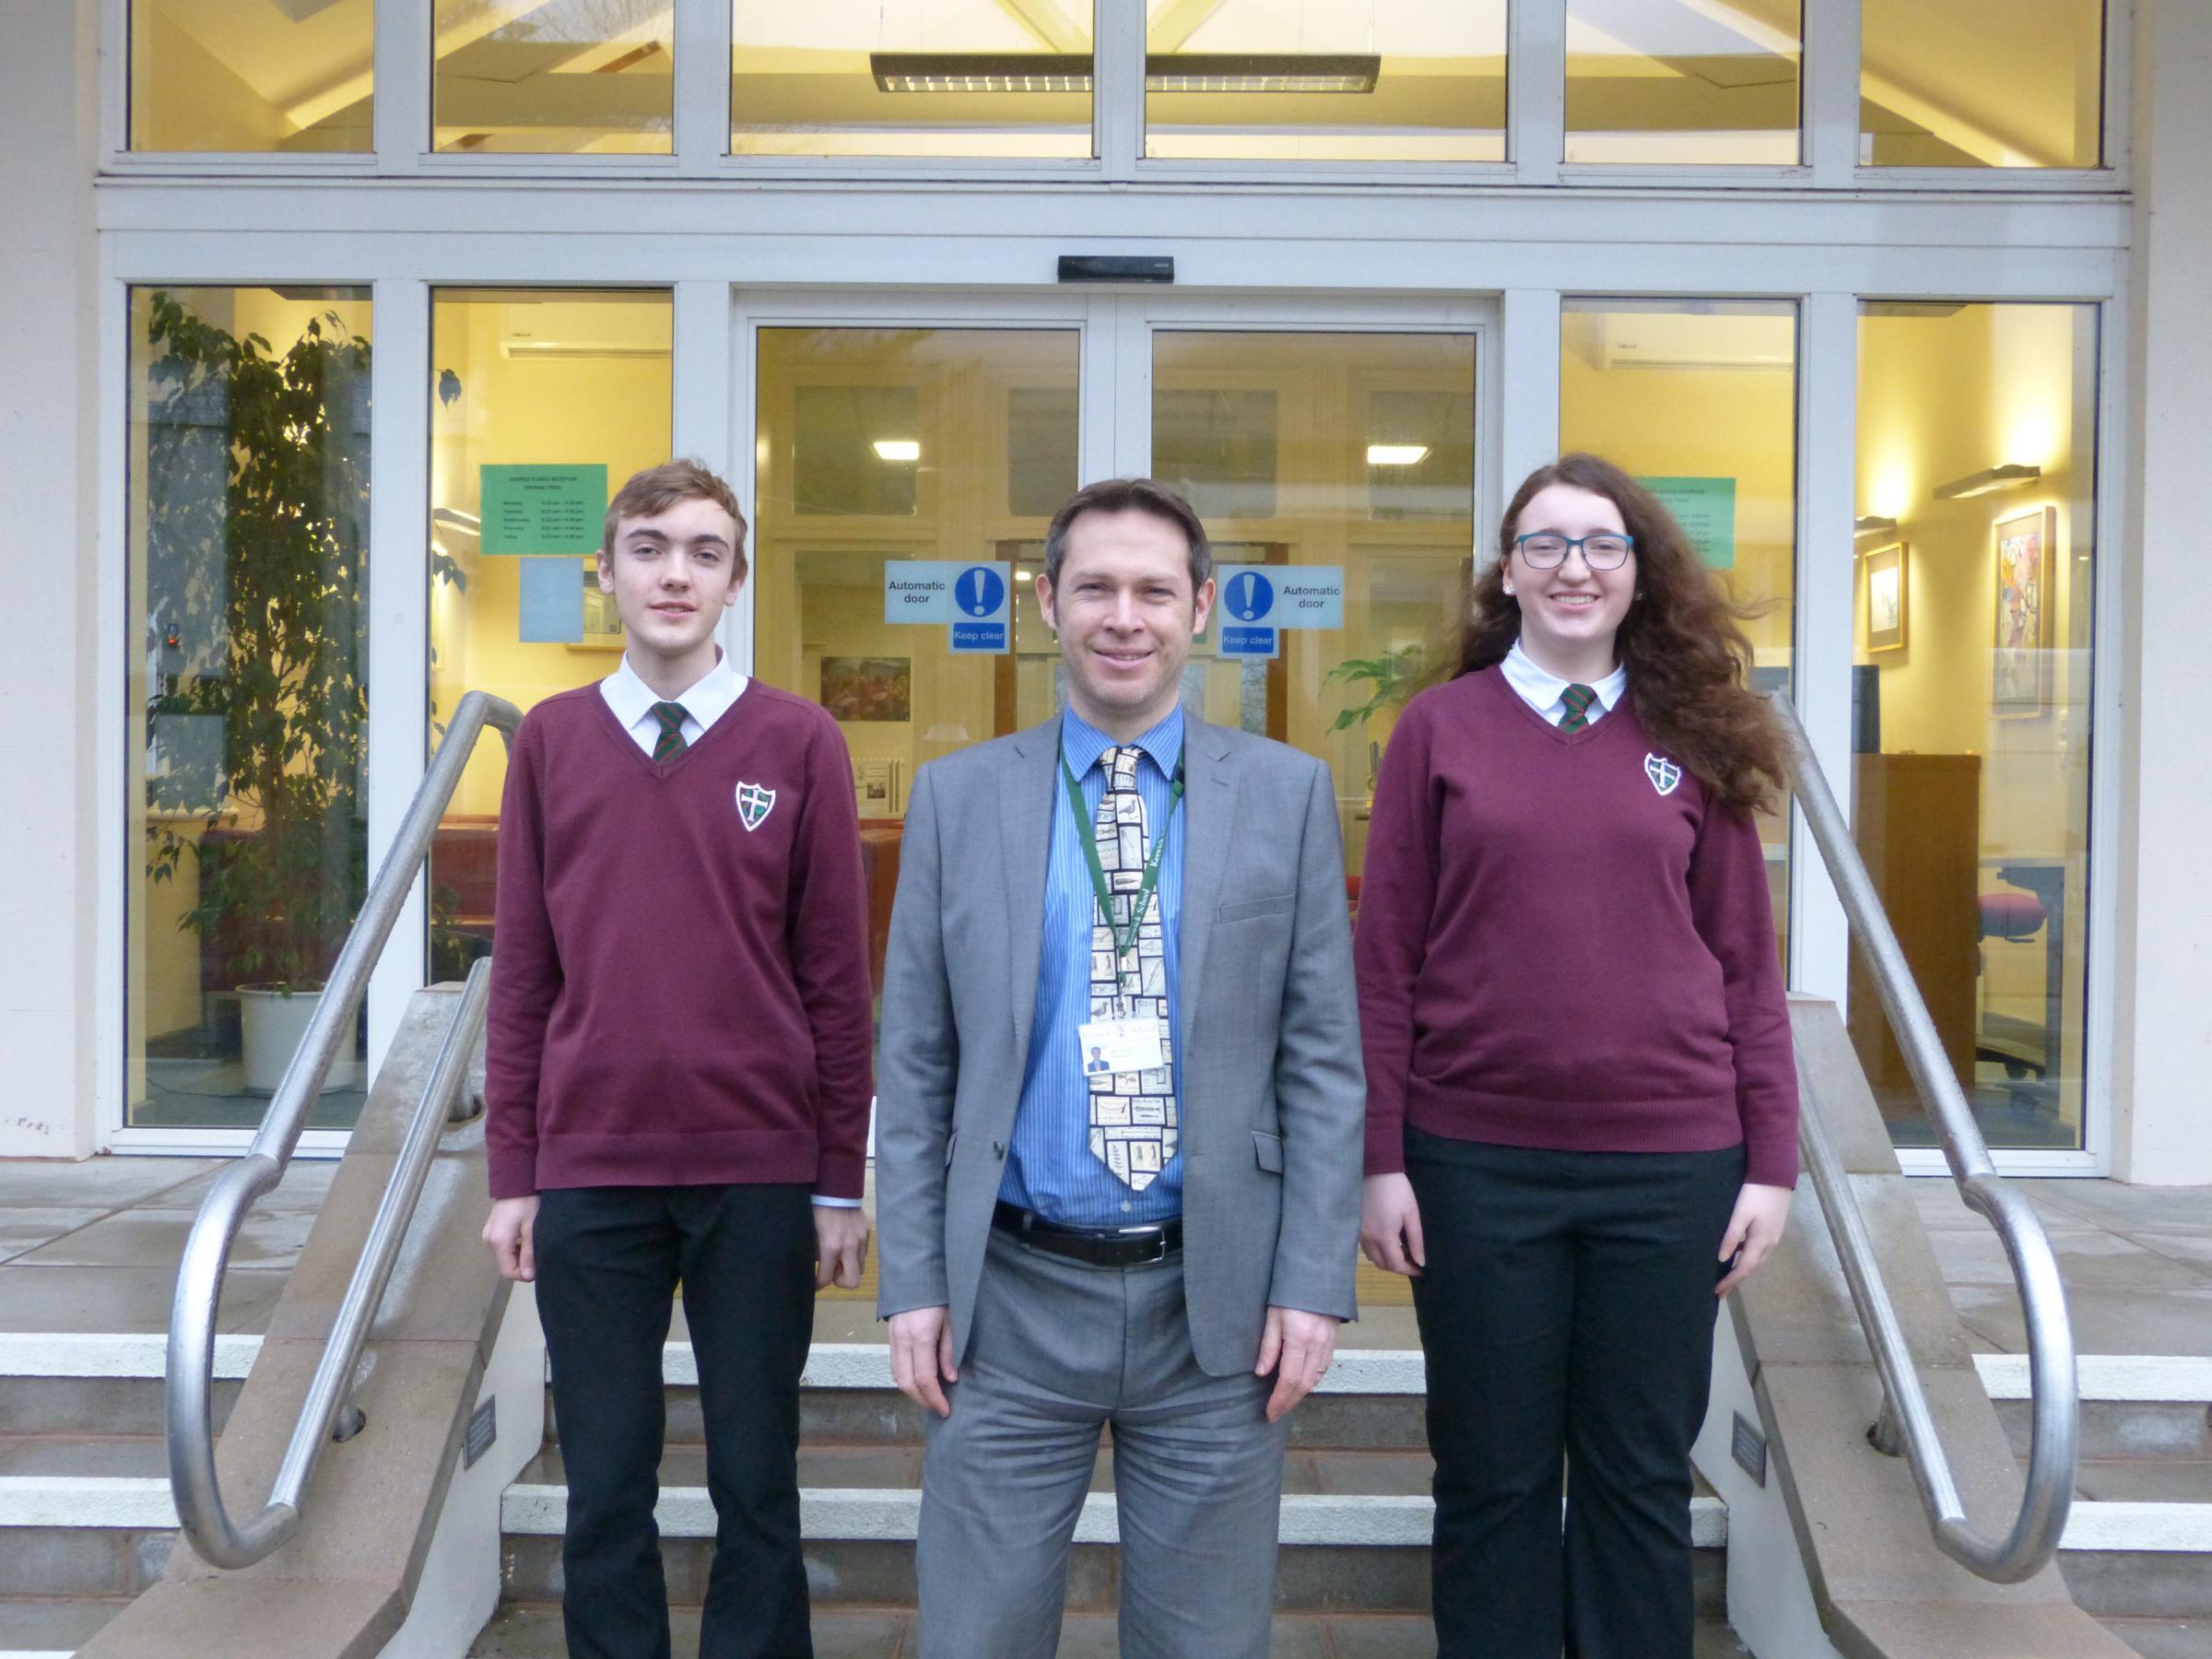 Keswick School pupils Connor Richards and Caitlin McKeever with headteacher Simon Jackson